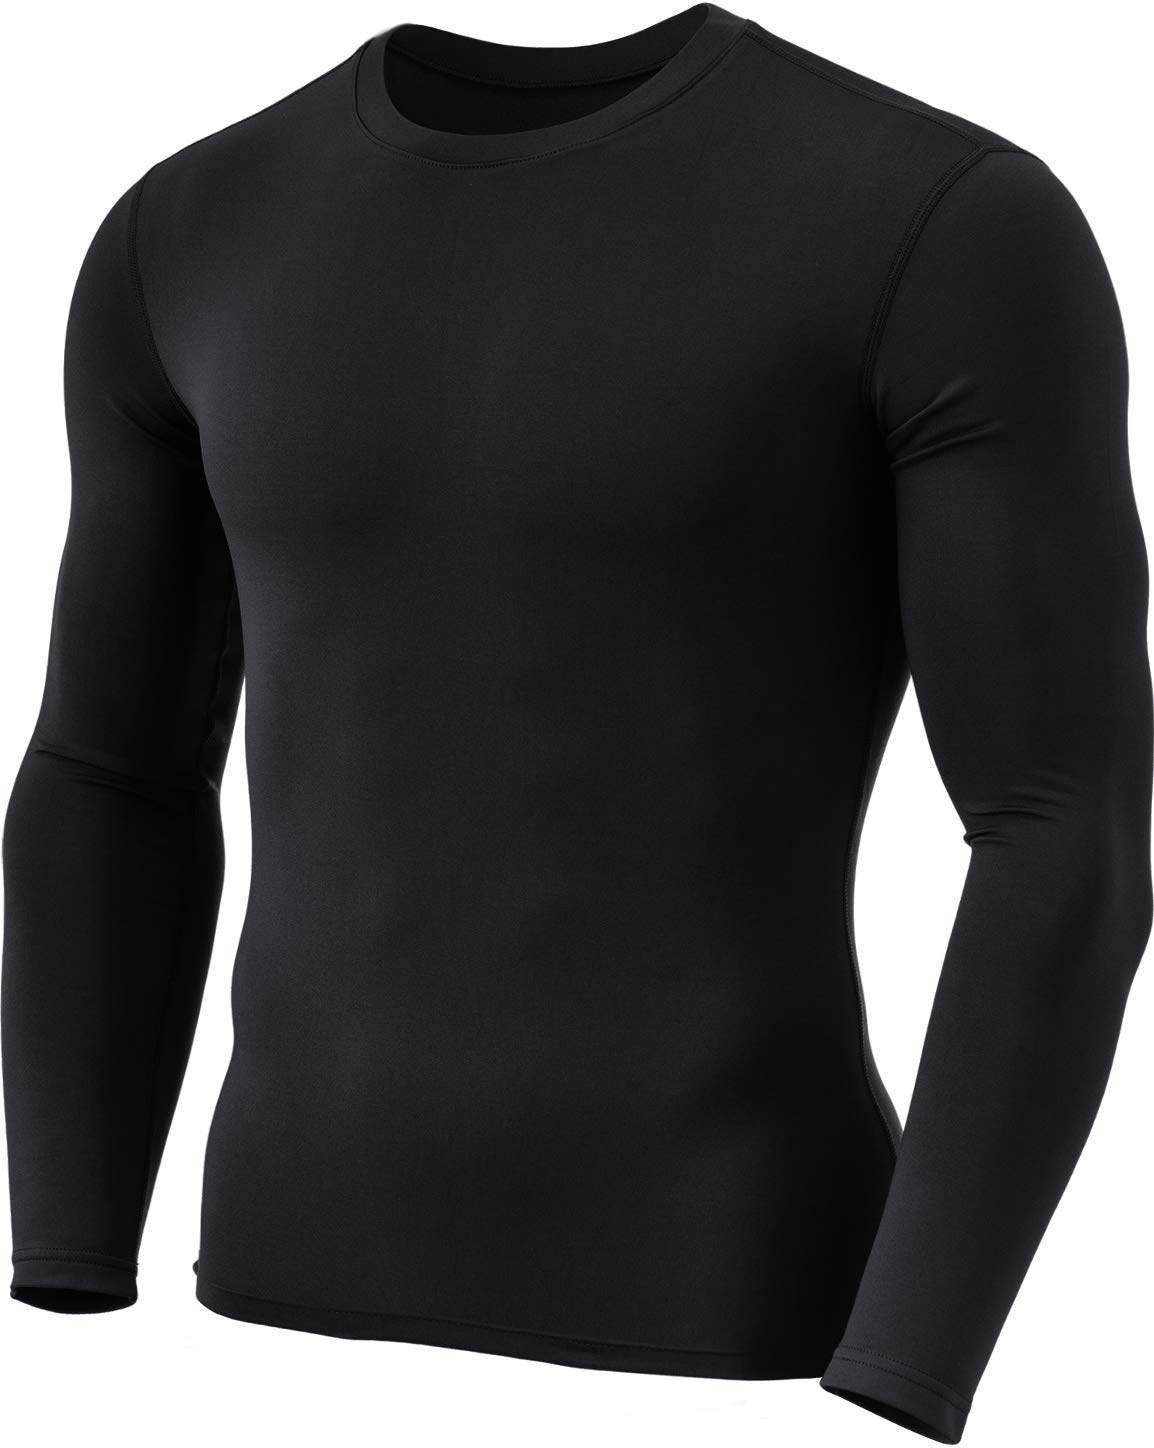 TSLA Men's Thermal Wintergear Compression Baselayer Long Sleeve Top, Thermal Basic(yud21) - Black, X-Large by TSLA